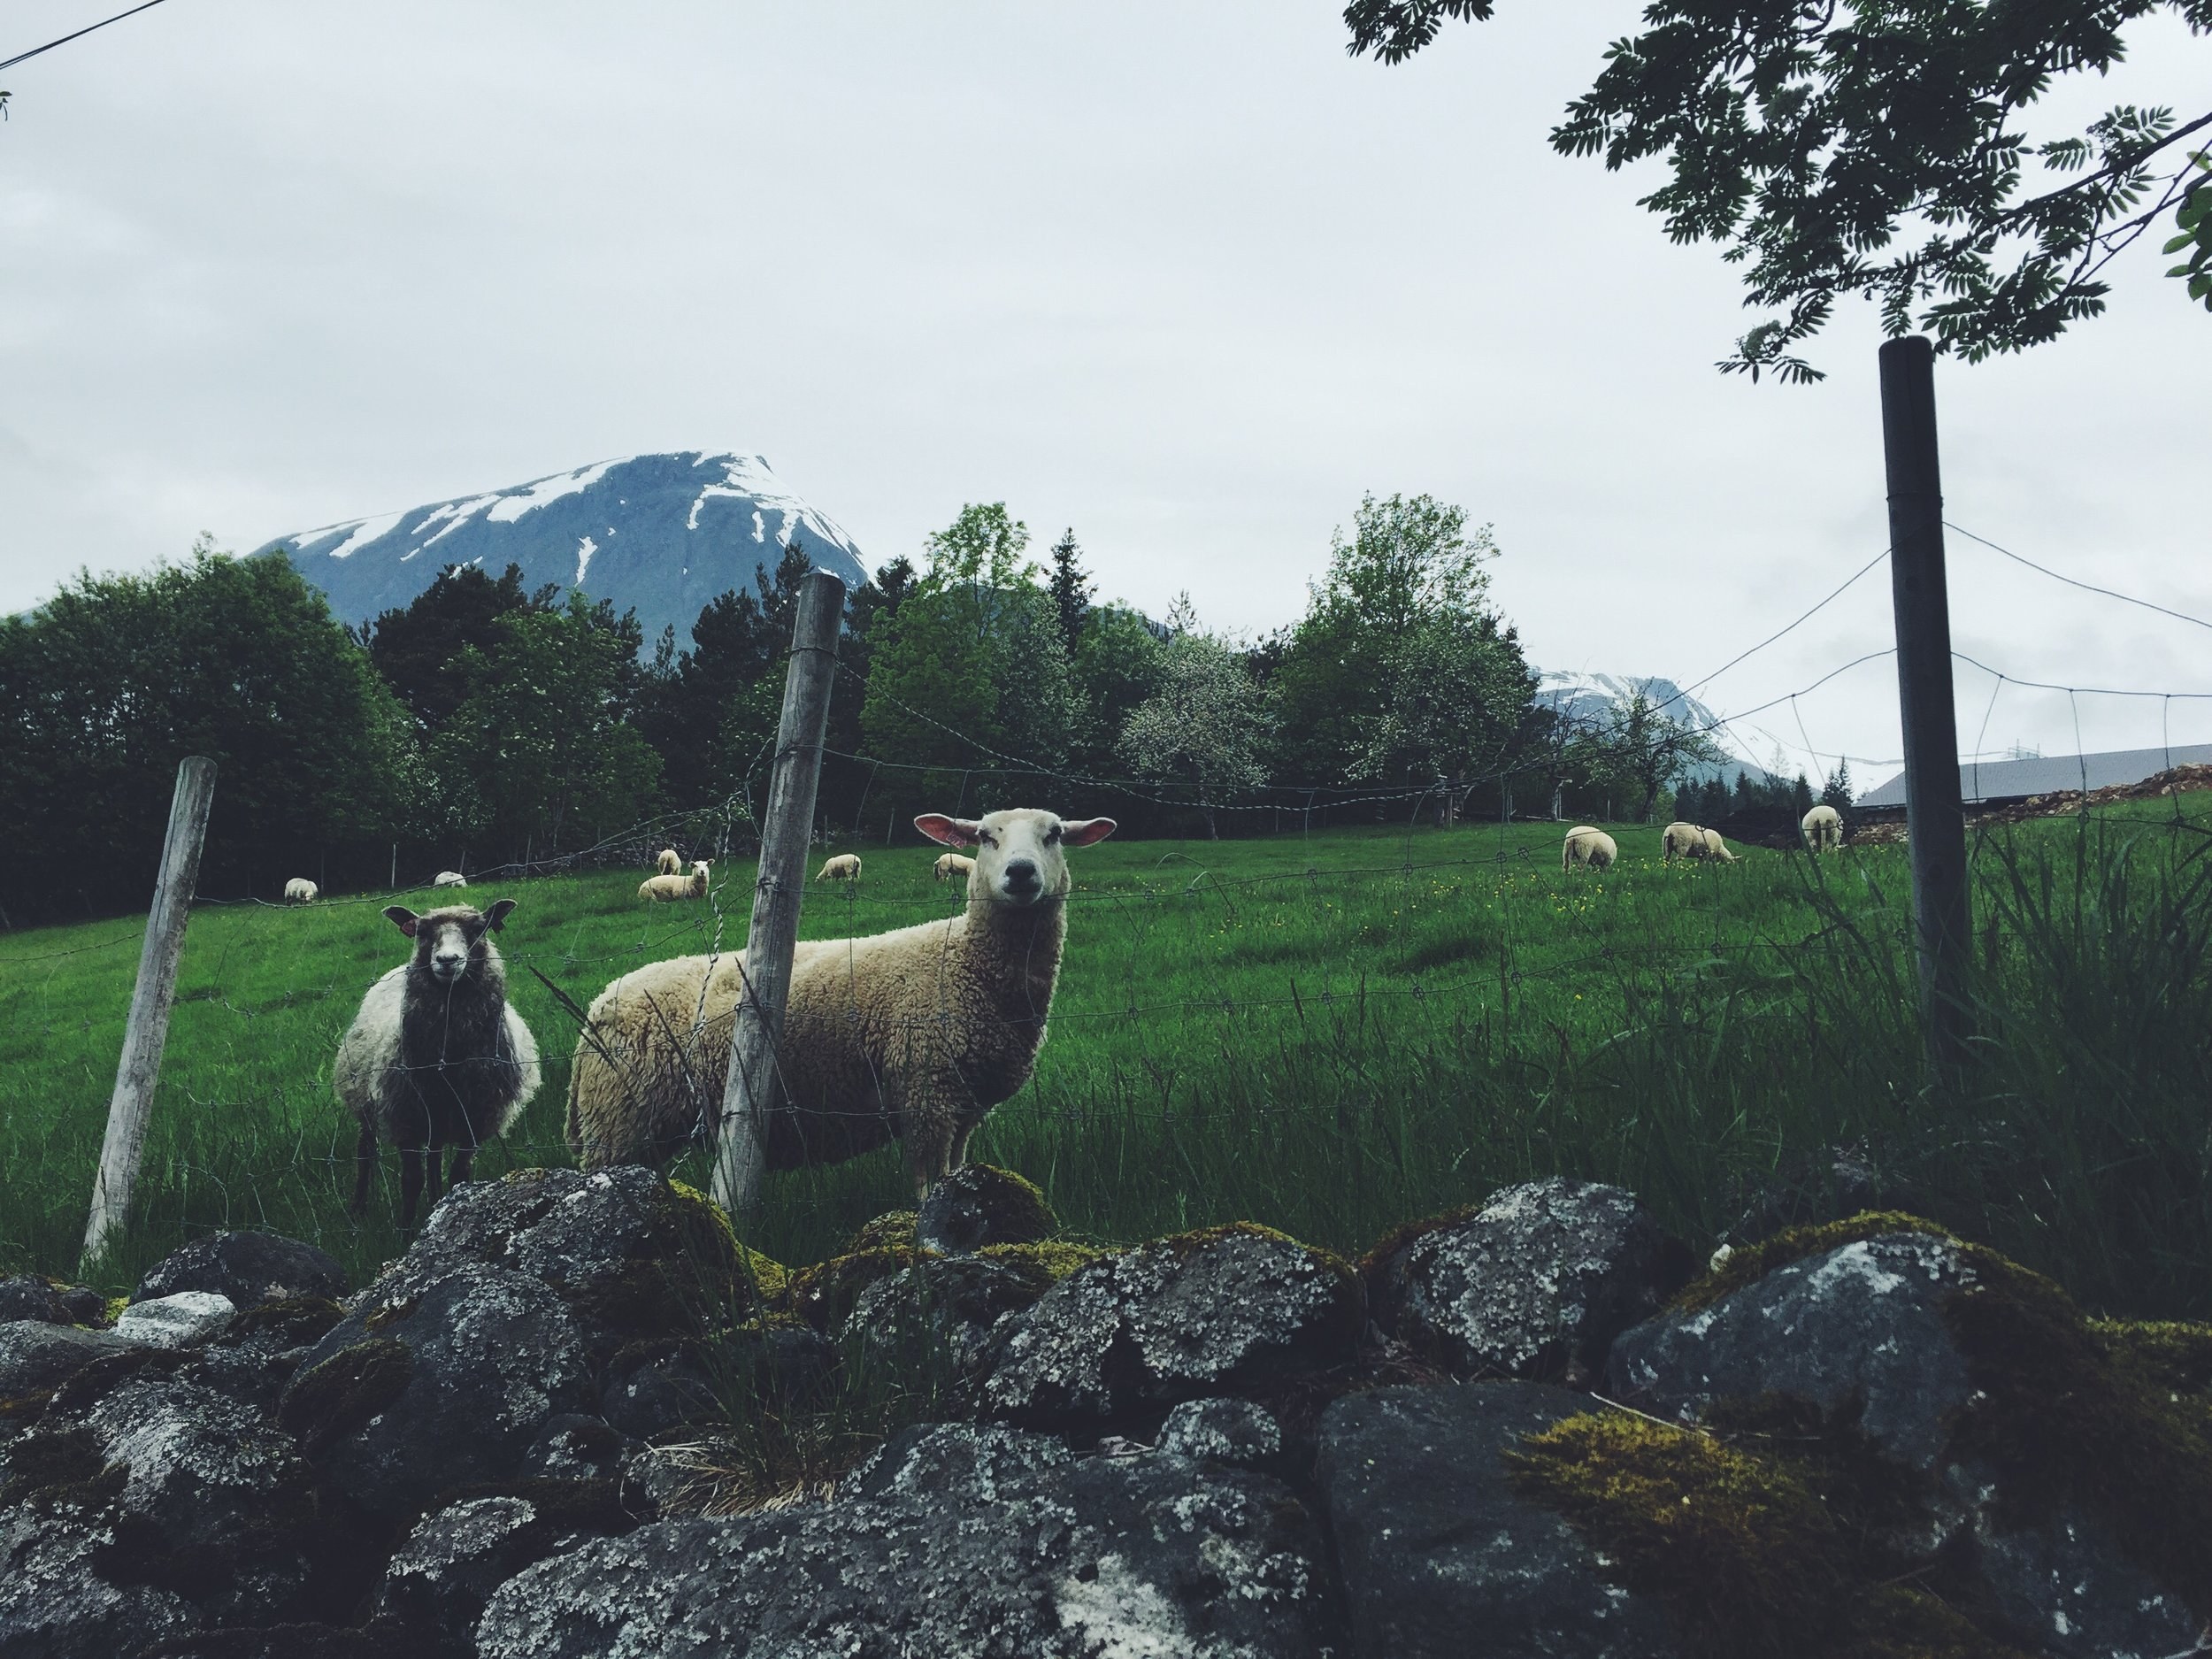 Our sheep friends, Isfjorden, Norway.